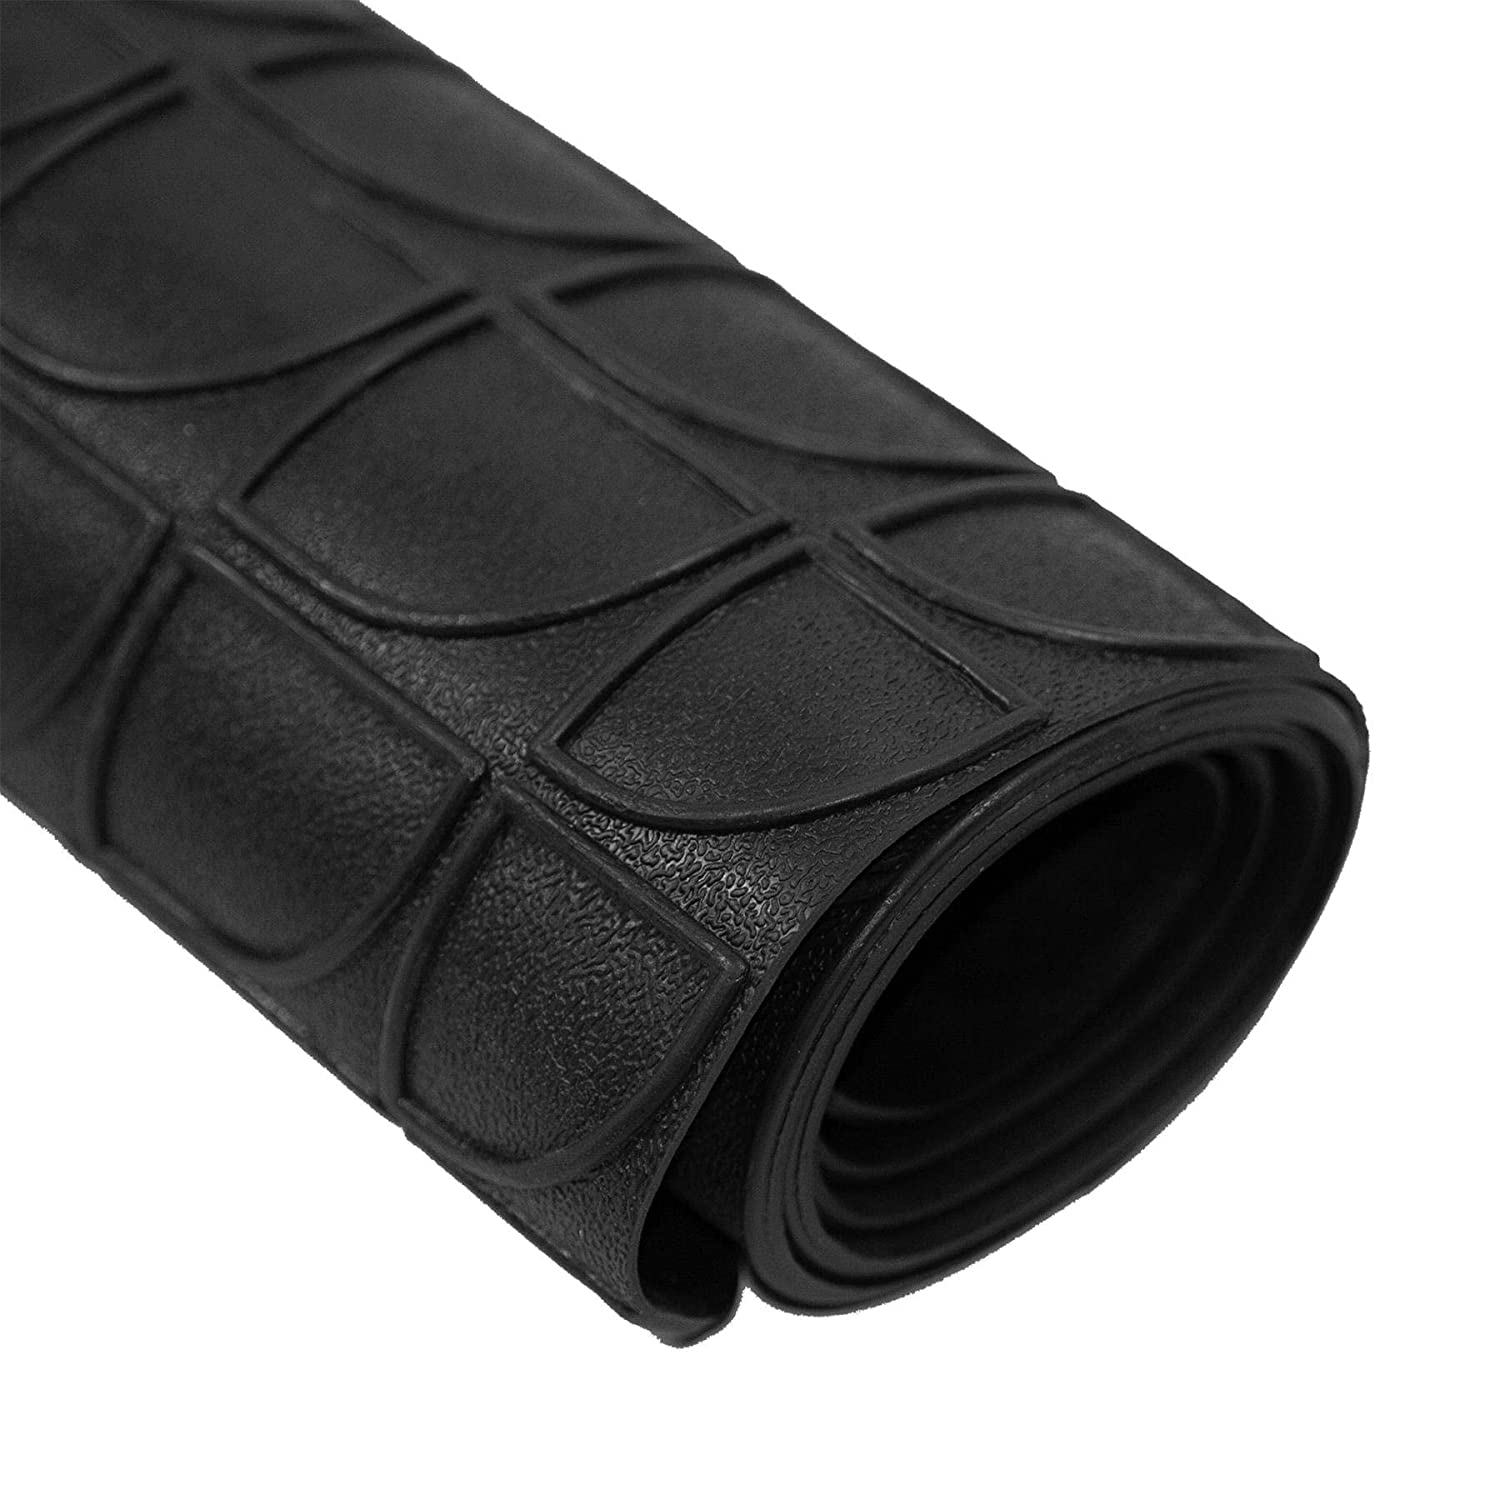 Dogs Shopping Tools Black Heavy Duty Rubber Non-Slip Car Boot Liner Complete UKB4C/® Universal Fit All